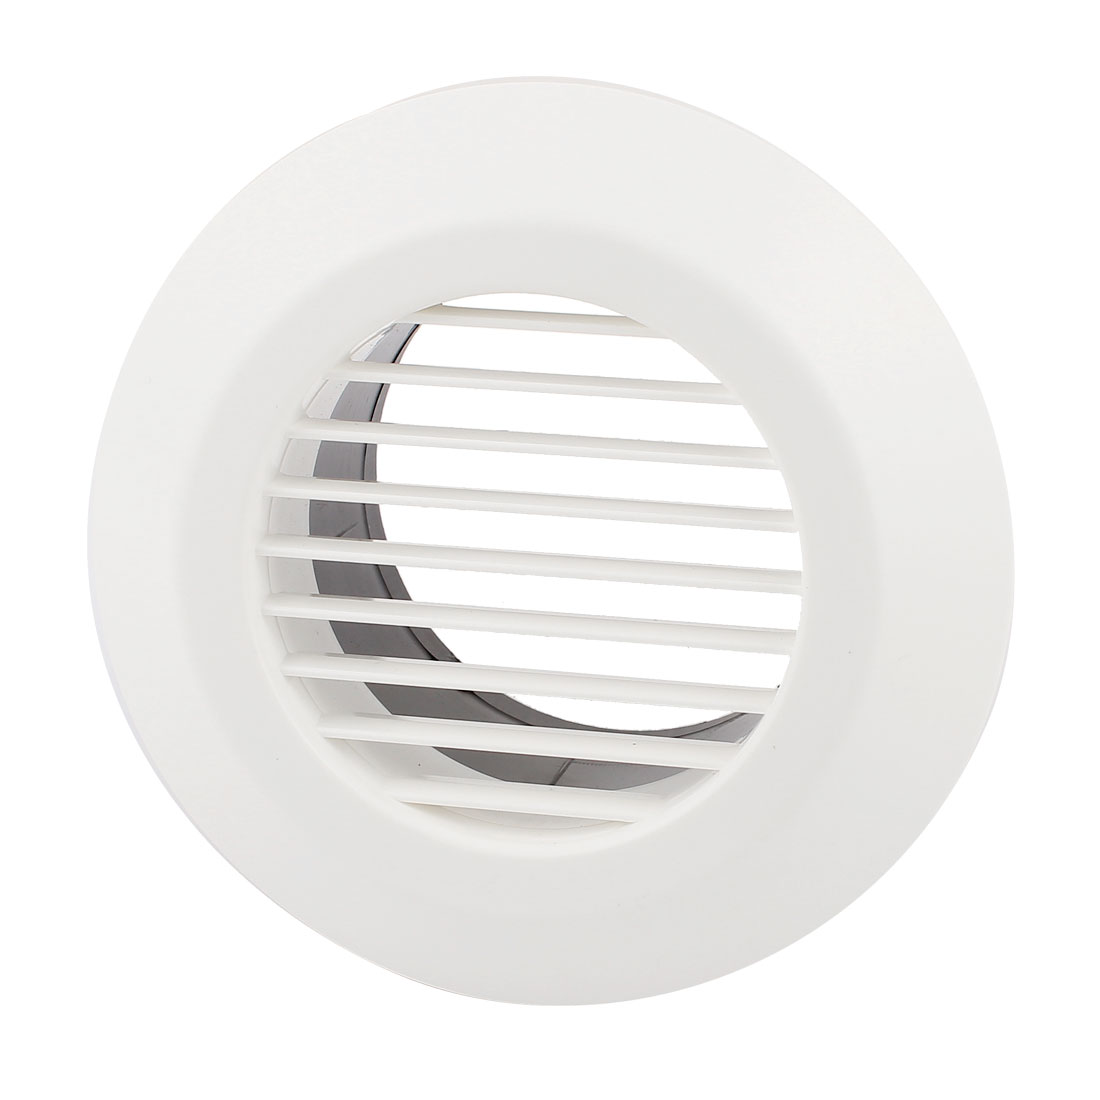 Black White 100mm OD Straight Round Air Grilles Diffusers for Kitchen